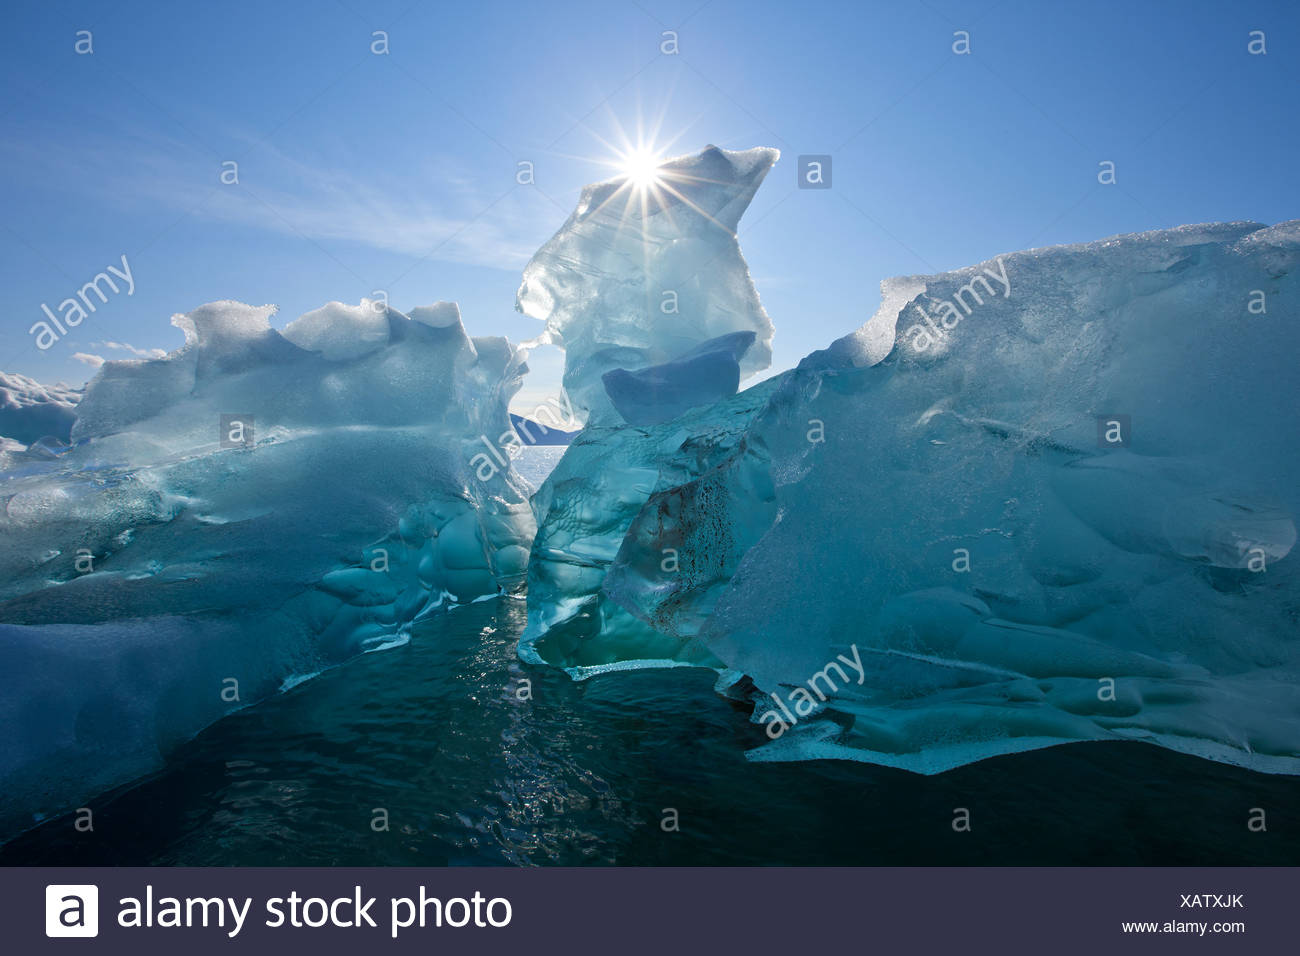 An iceberg floating on the calm waters of Holkham Bay at the entrance to Tracy Arm, Southeast Alaska, Autumn - Stock Image